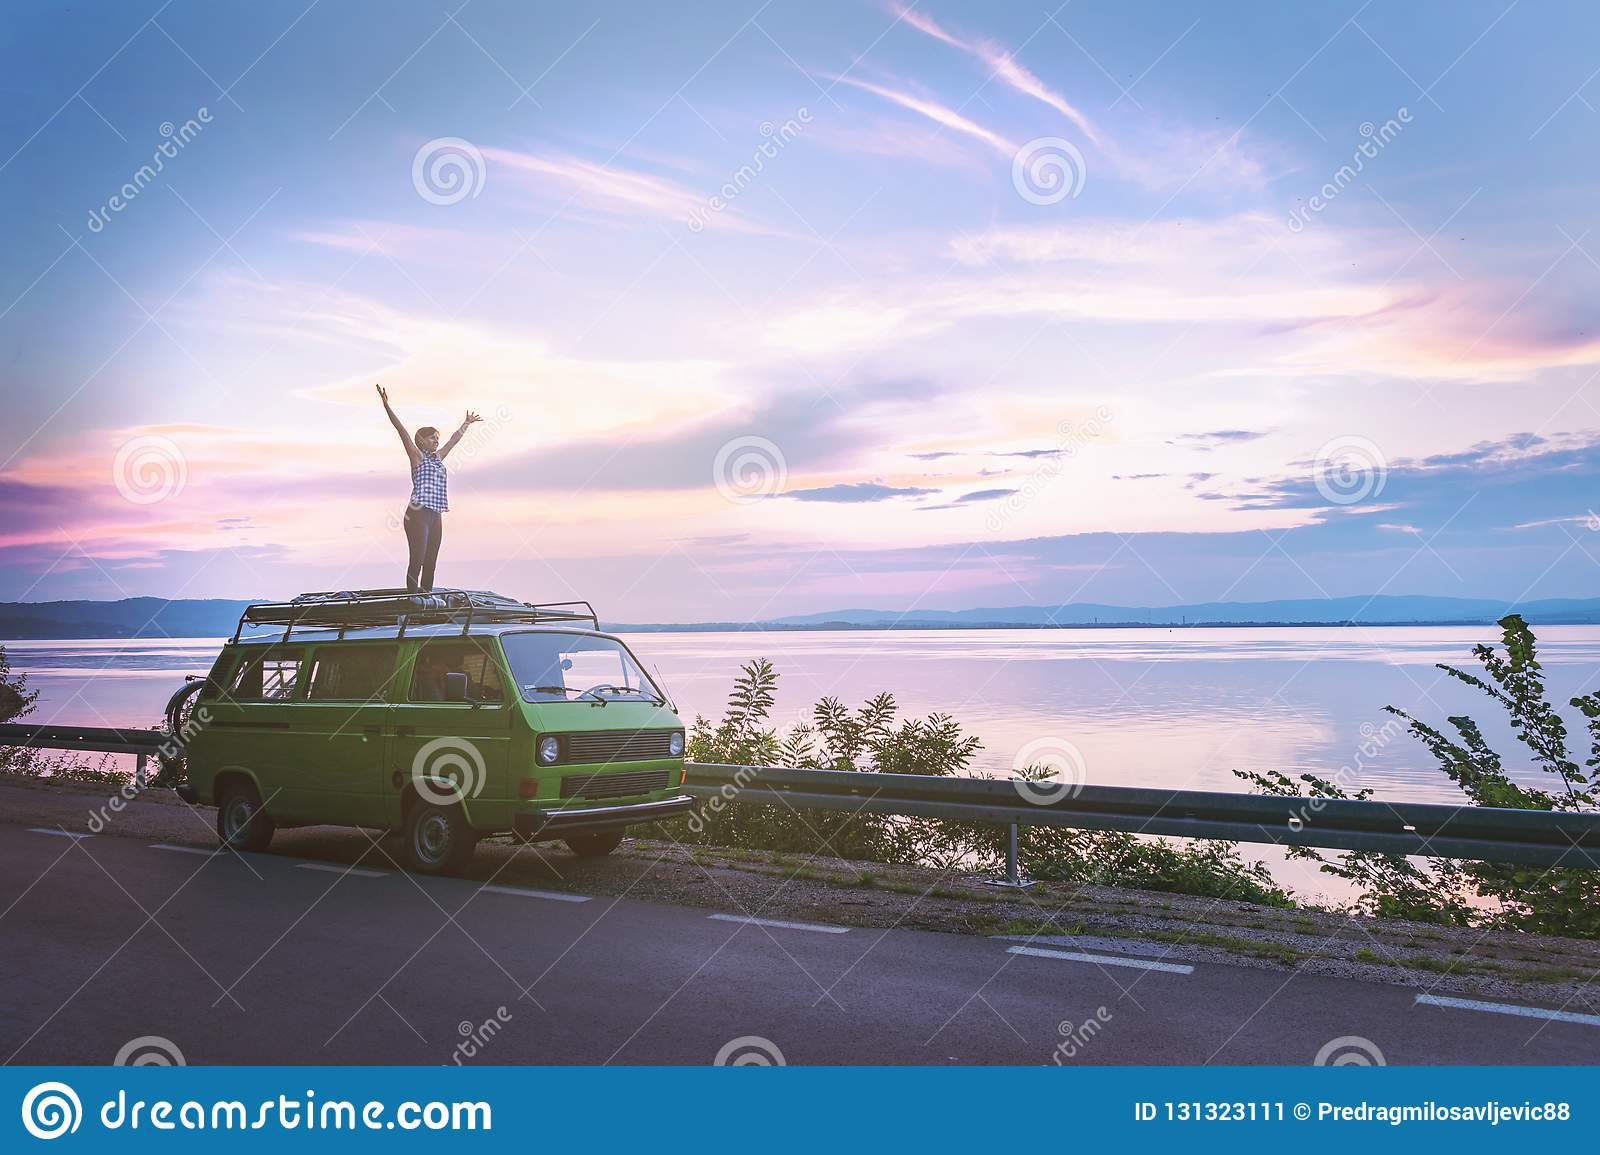 Young beautiful girl standing on the roof of old timer classic camper van parked by the sea with amazingly colorful sunset sky, ha